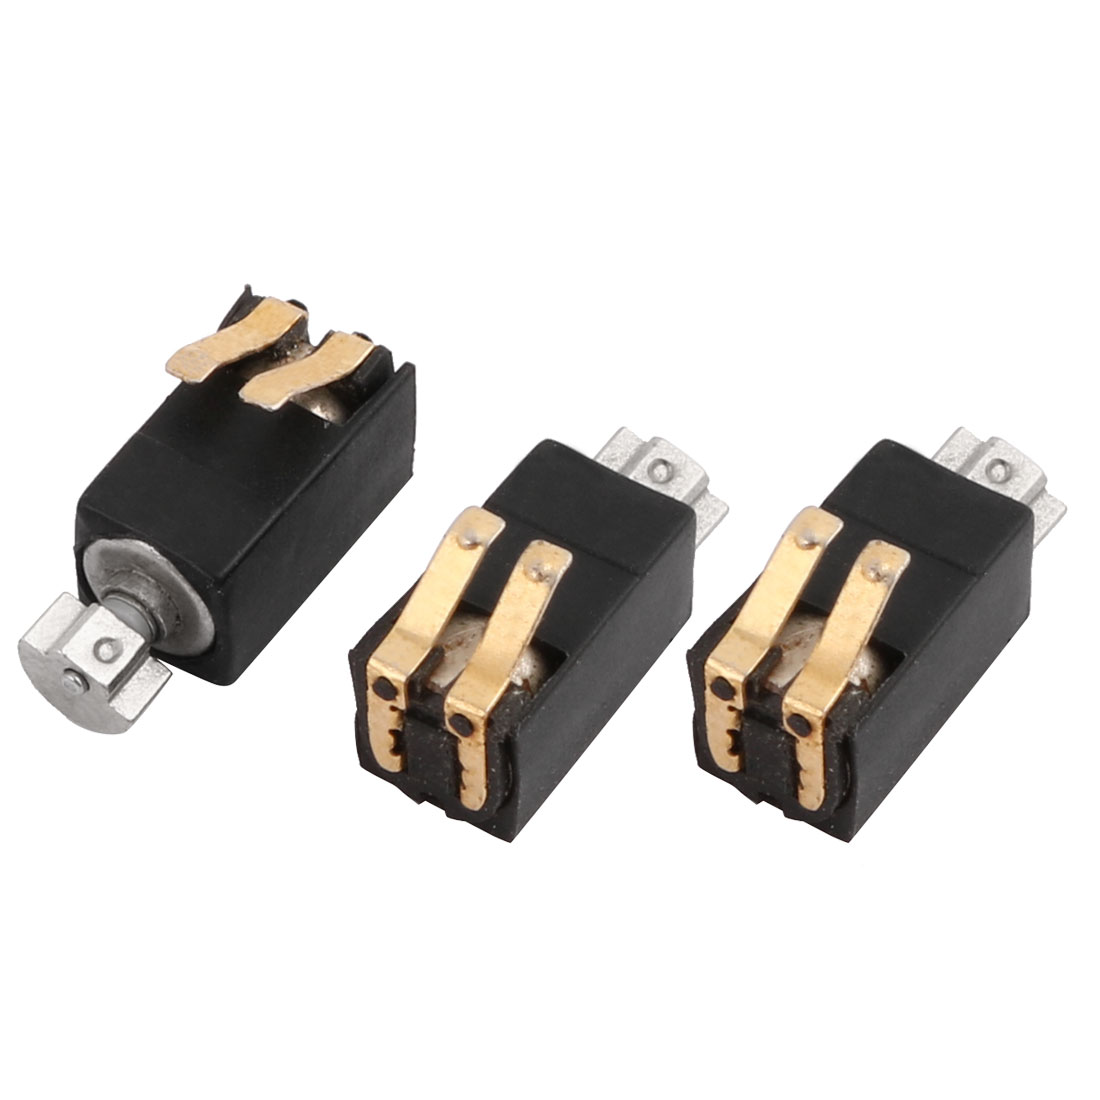 3 Pcs 1400RPM Speed 3V Mobile Phone Micro DC Coin Vibration Motor